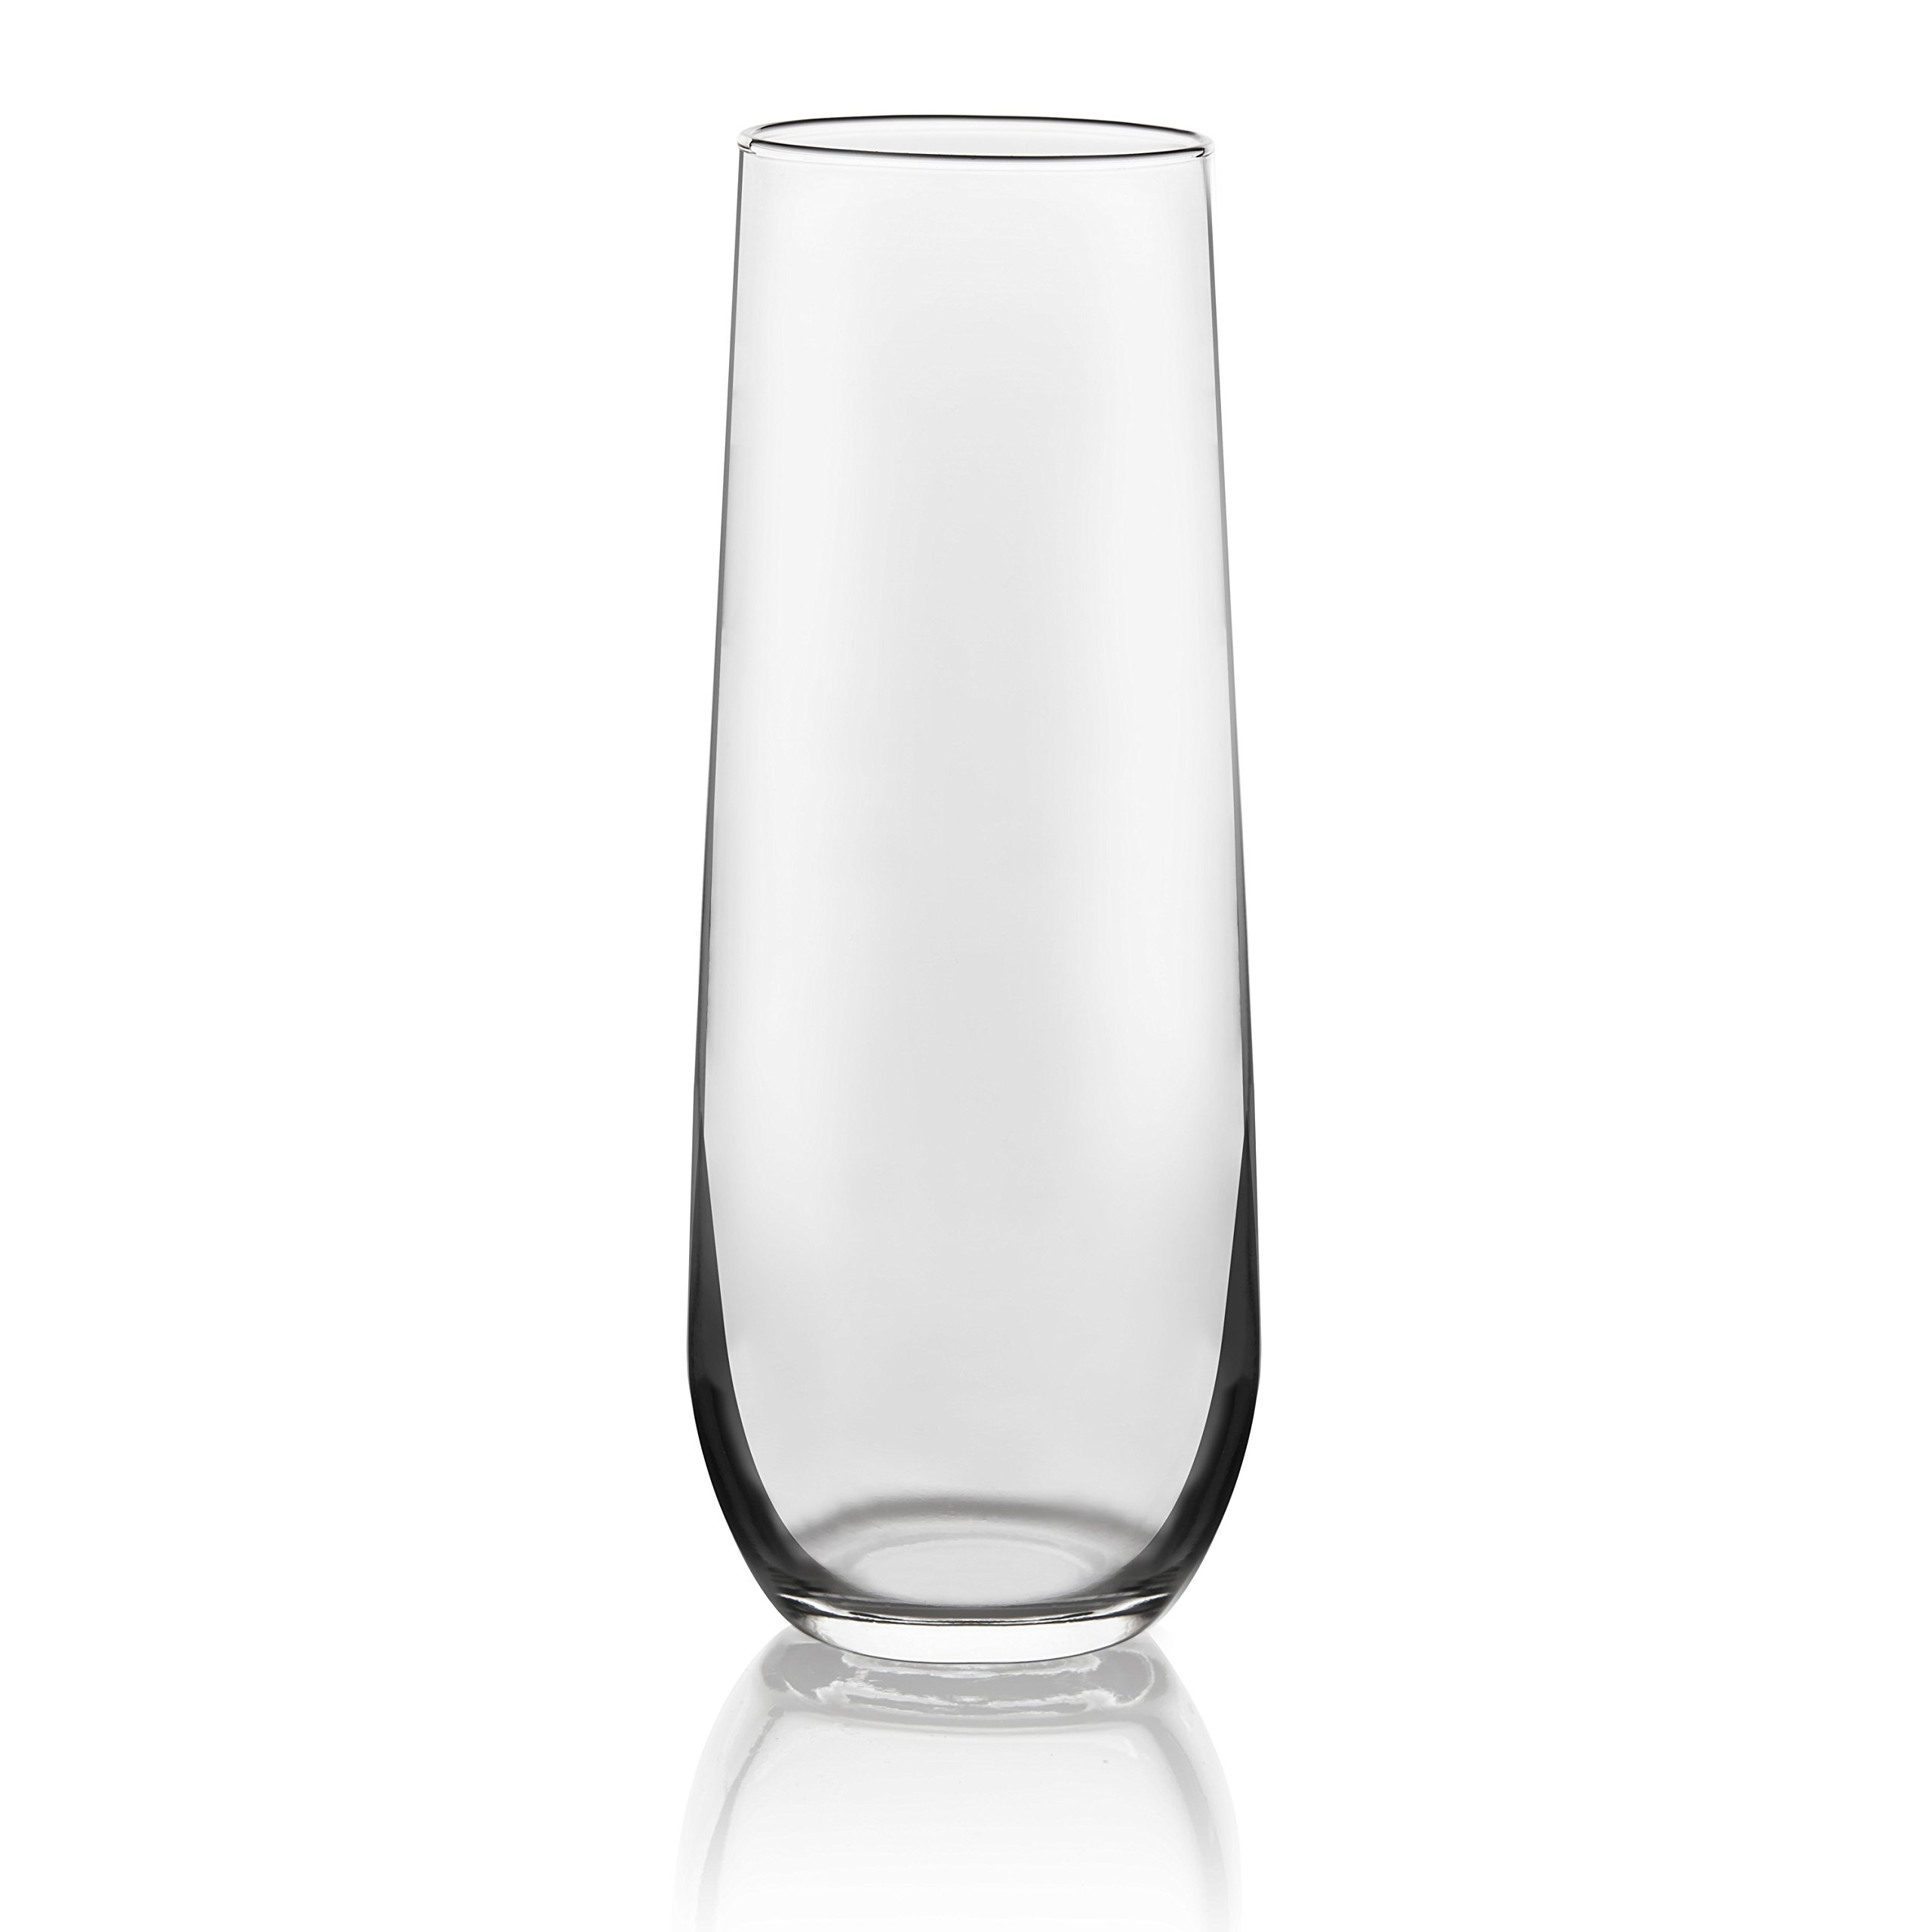 Libbey Stemless Champagne Flute Glasses, Set of 12 by Libbey (Image #2)